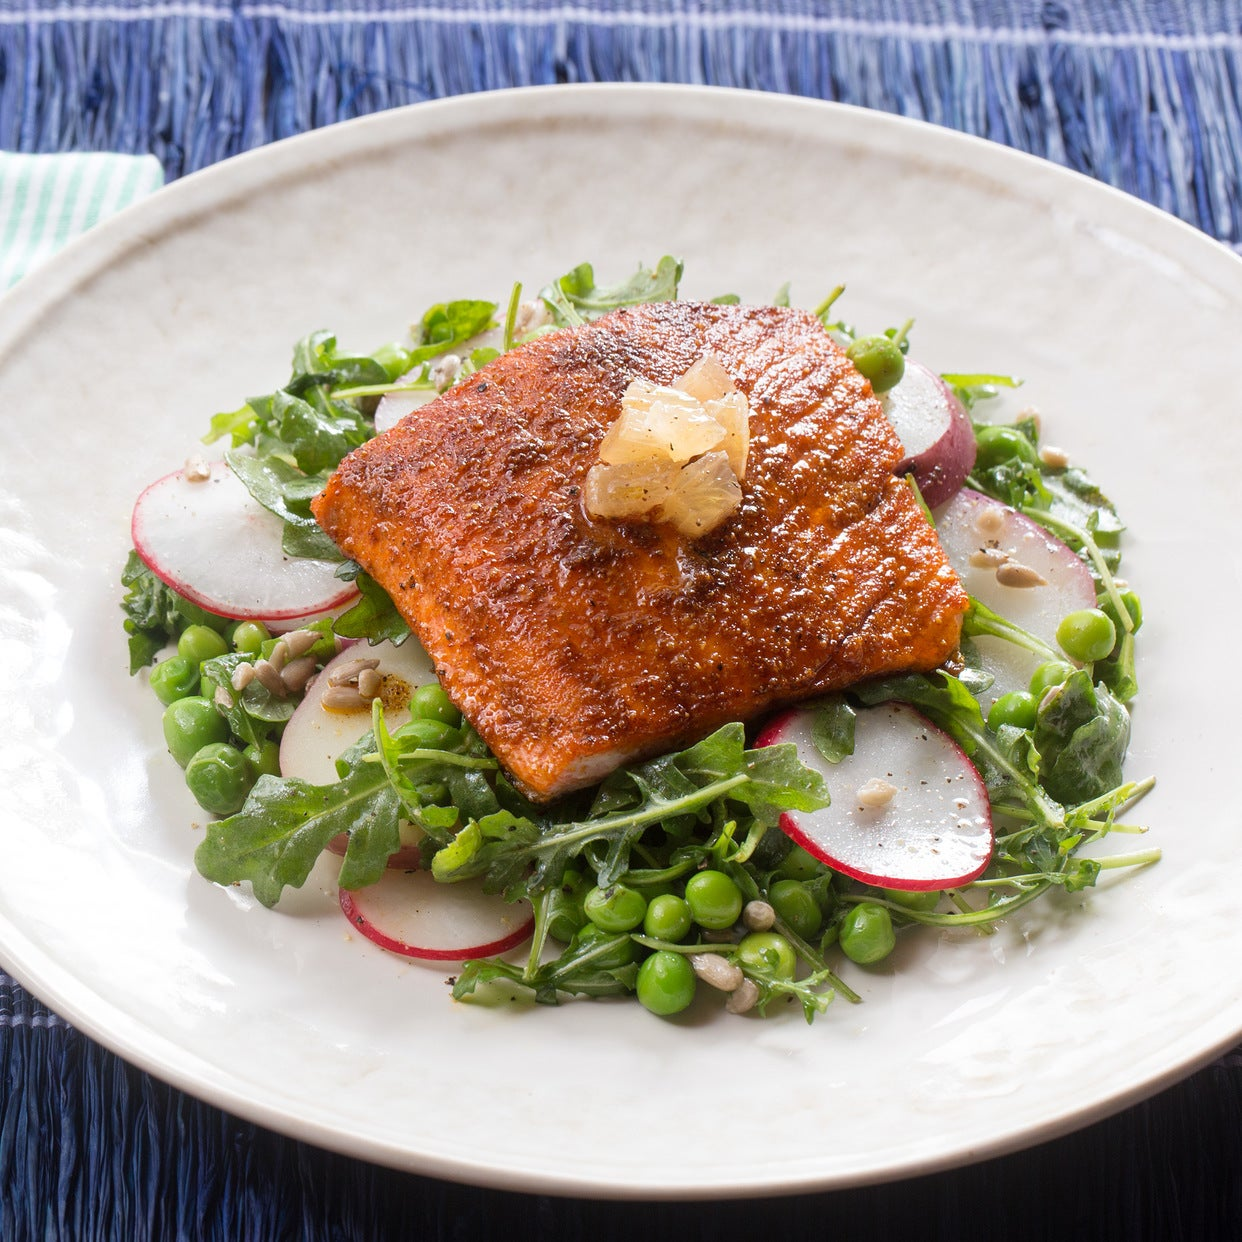 A recipe for salmon from pink salmon